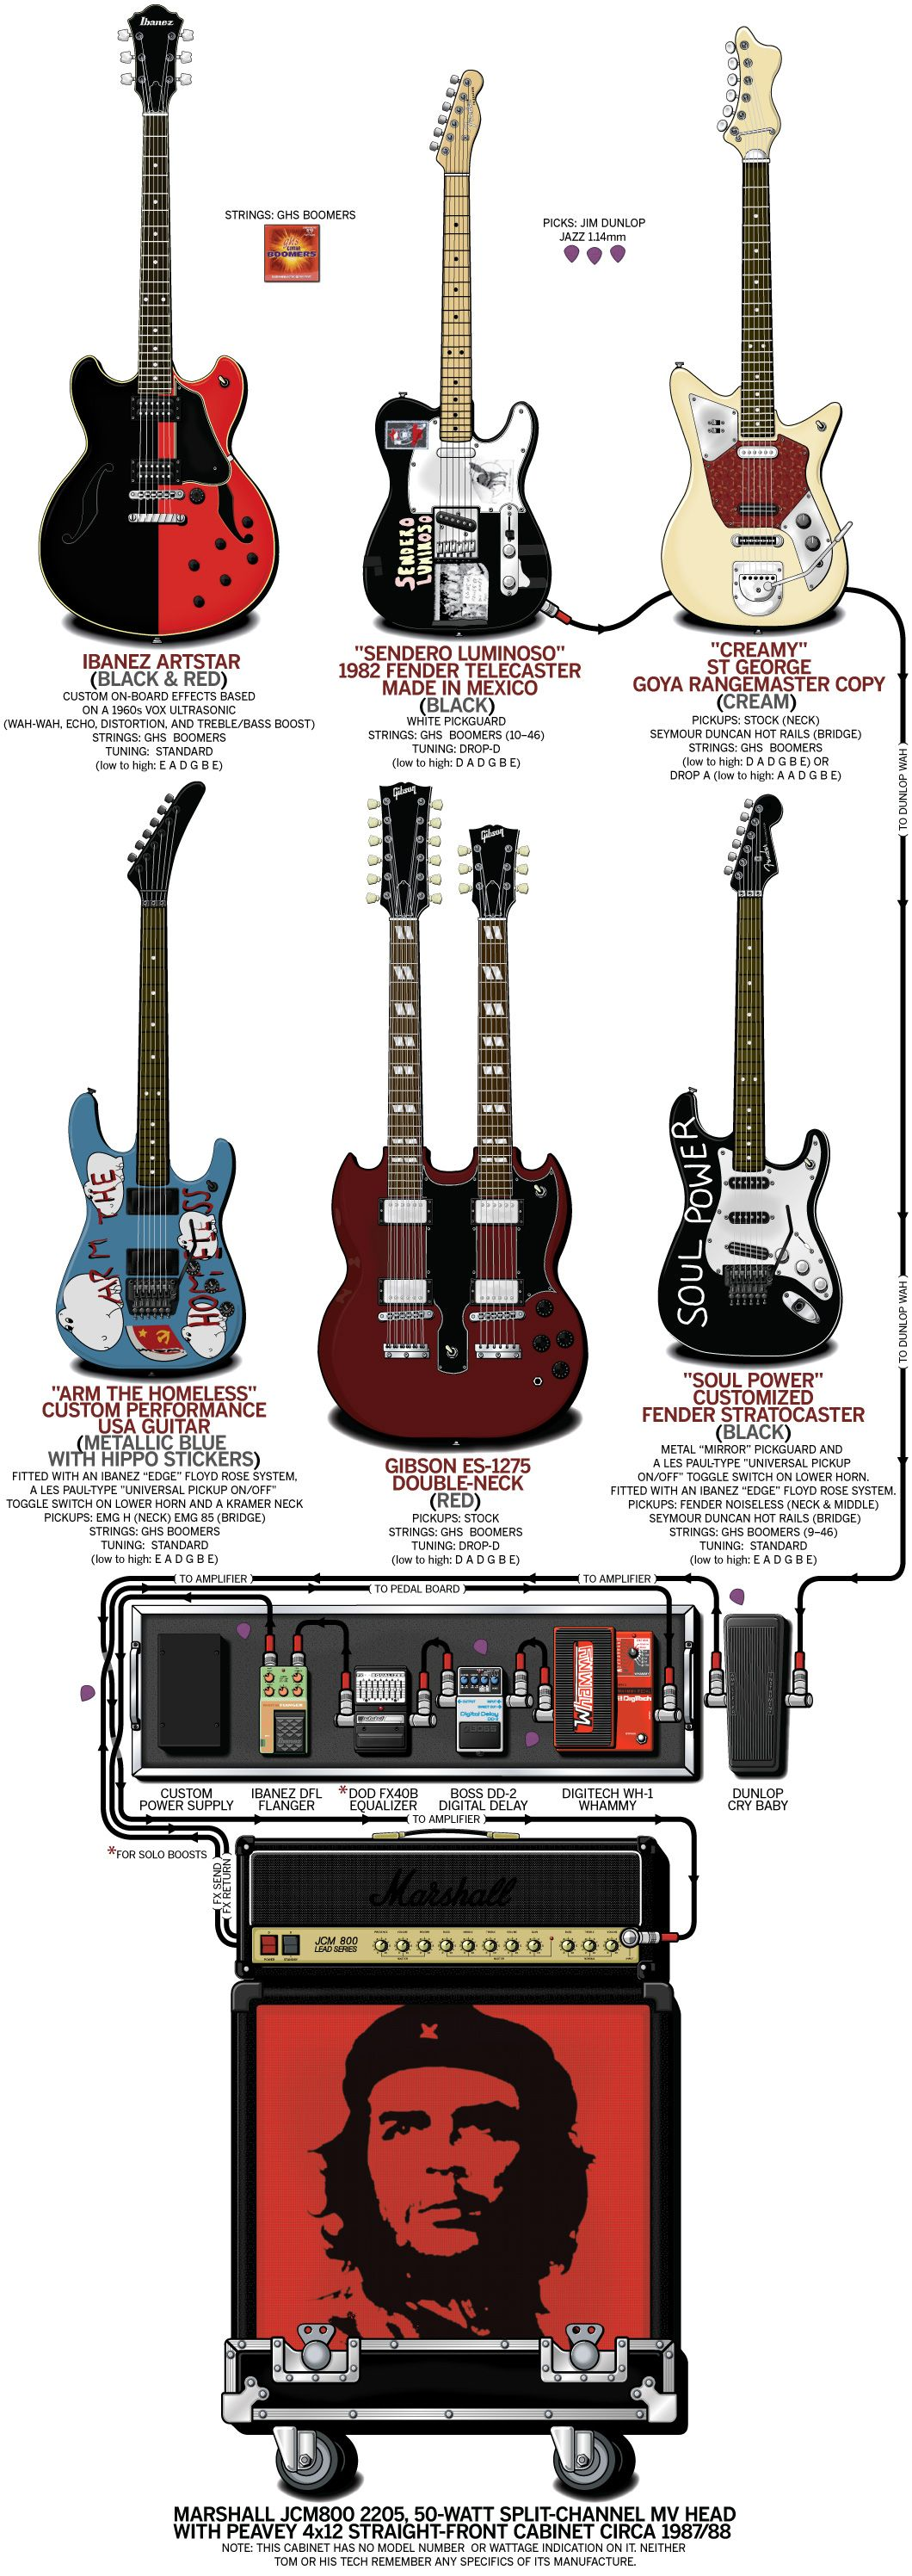 bfa606dfc30122b117caa75900052153 tom morello rage against the machine 1998 guitar com tom morello guitar wiring diagram at alyssarenee.co